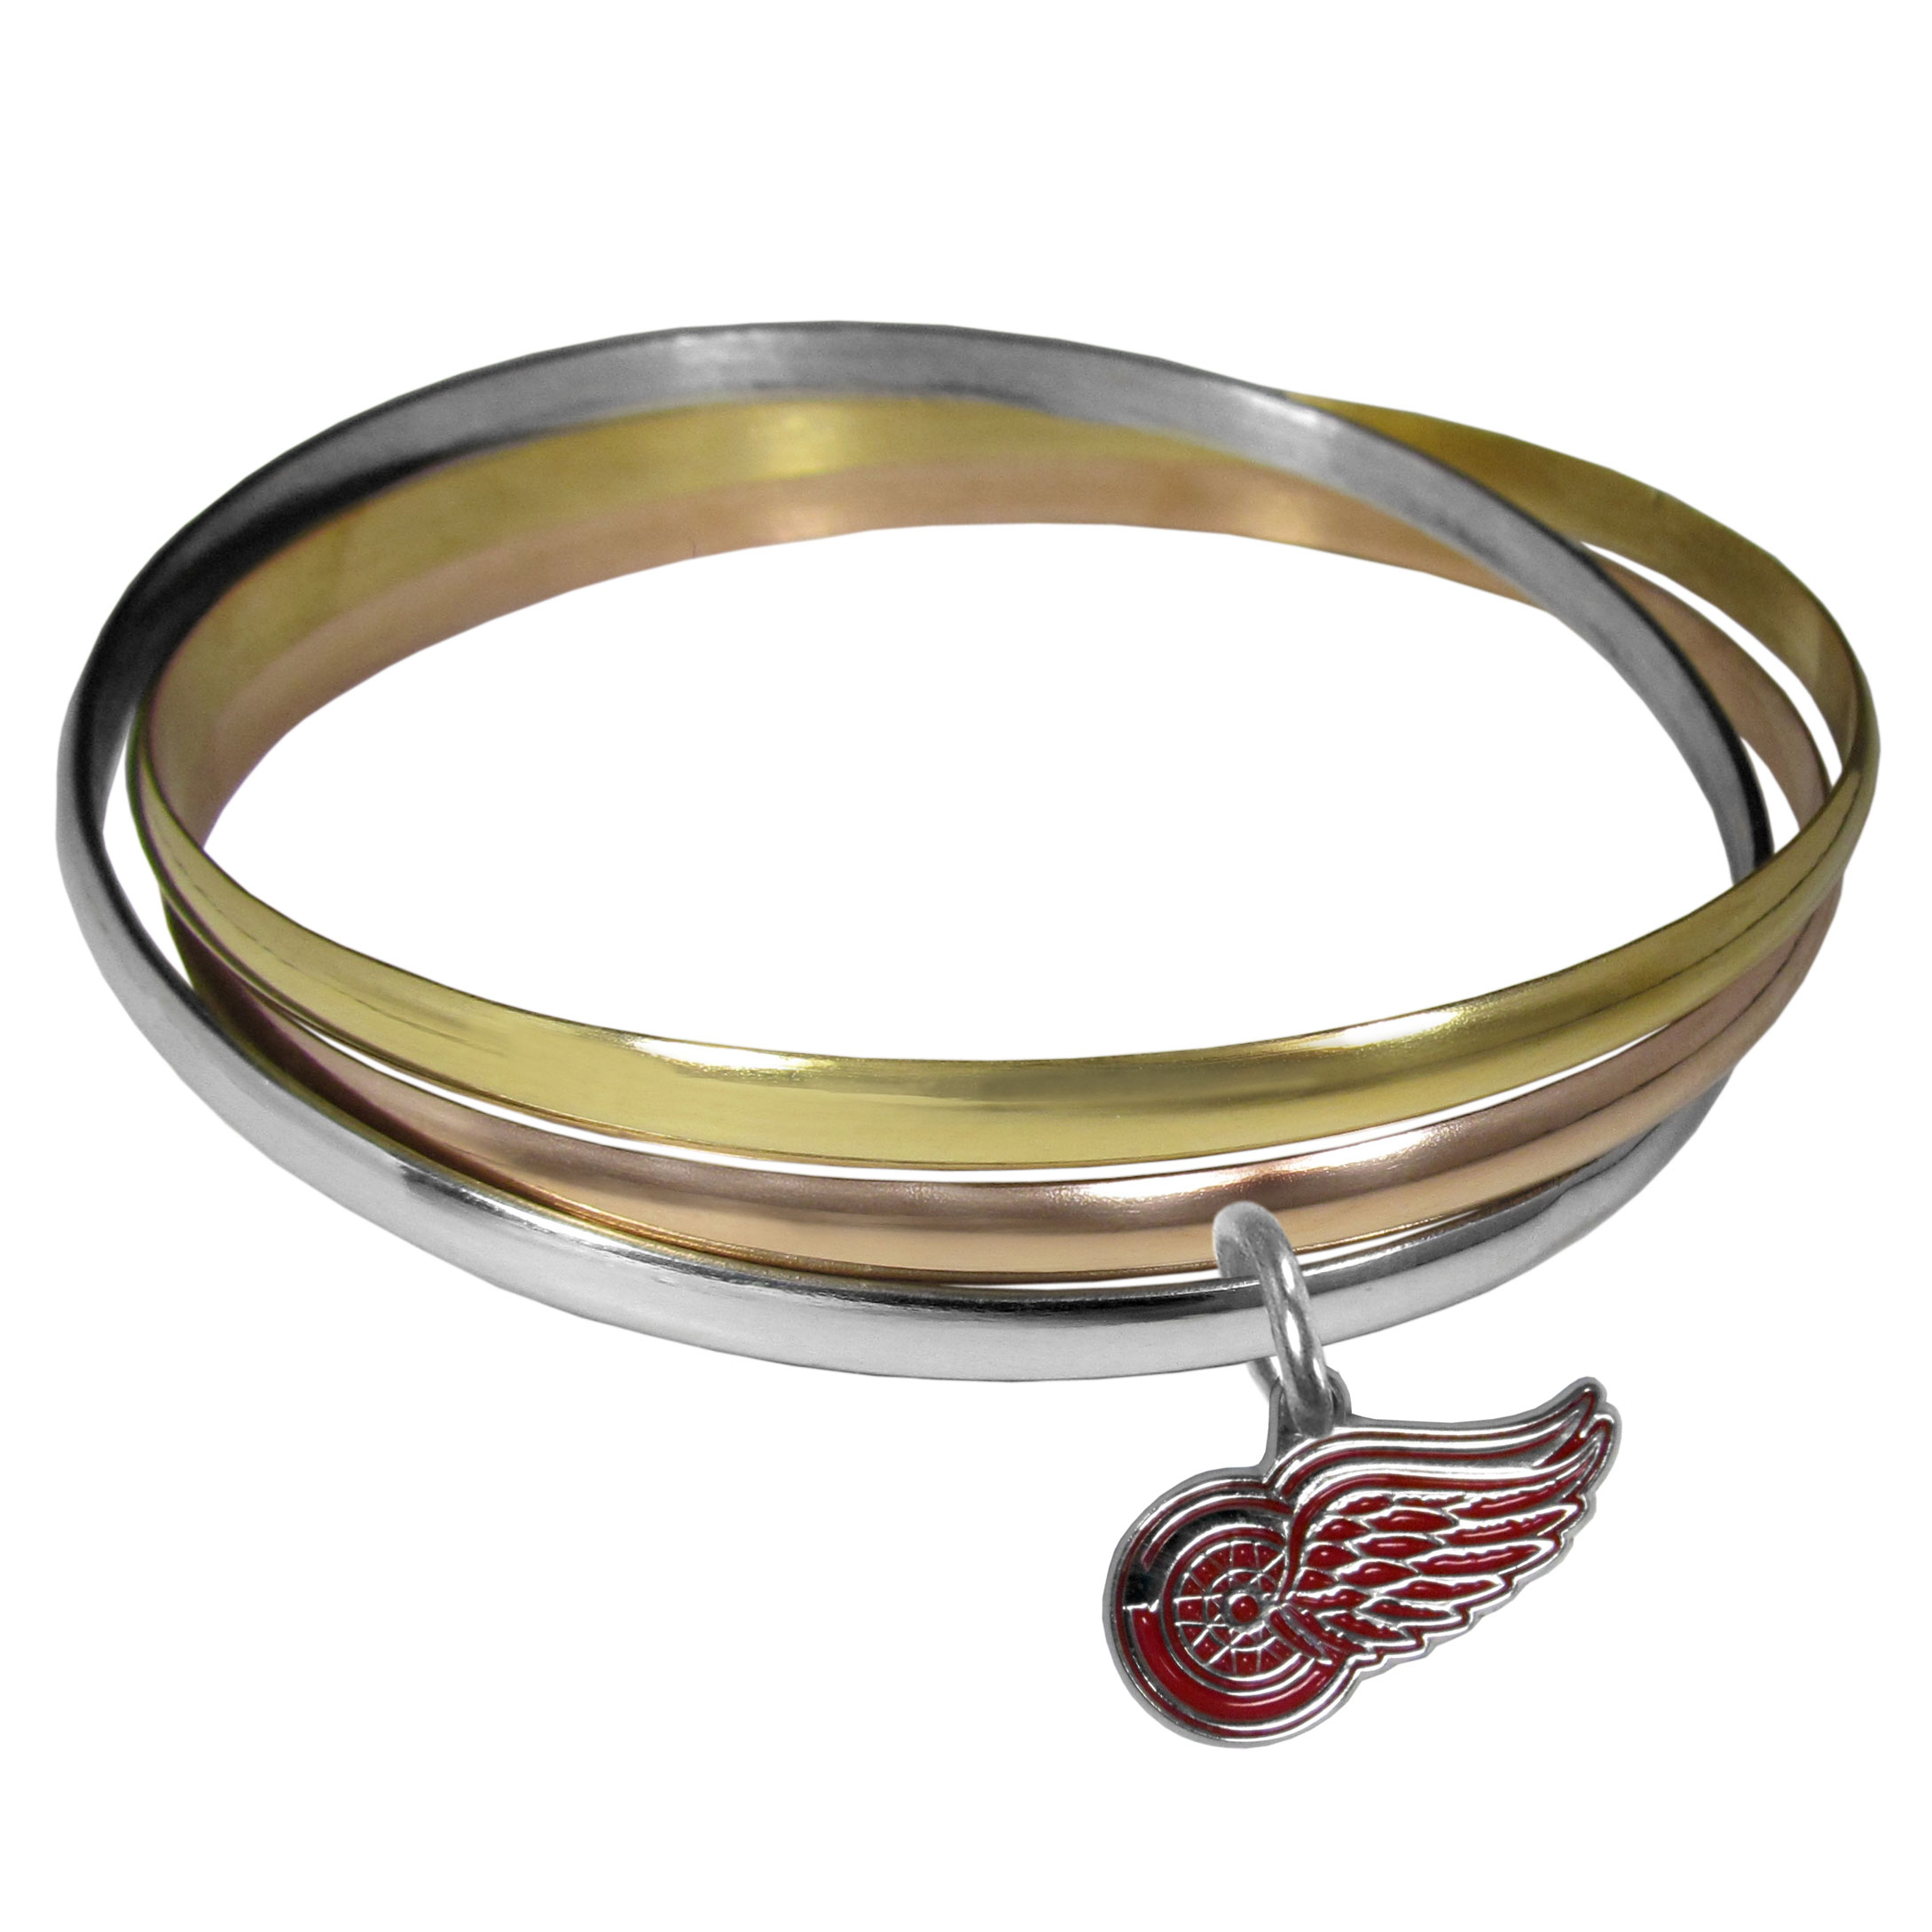 Detroit Red Wings® Tri-color Bangle Bracelet - These beautiful bangles come in a interlocking style and feature a fully cast Detroit Red Wings® charm with enameled team colors. The bracelet has a silver toned bangle, gold tone bangle and brass toned bangle.